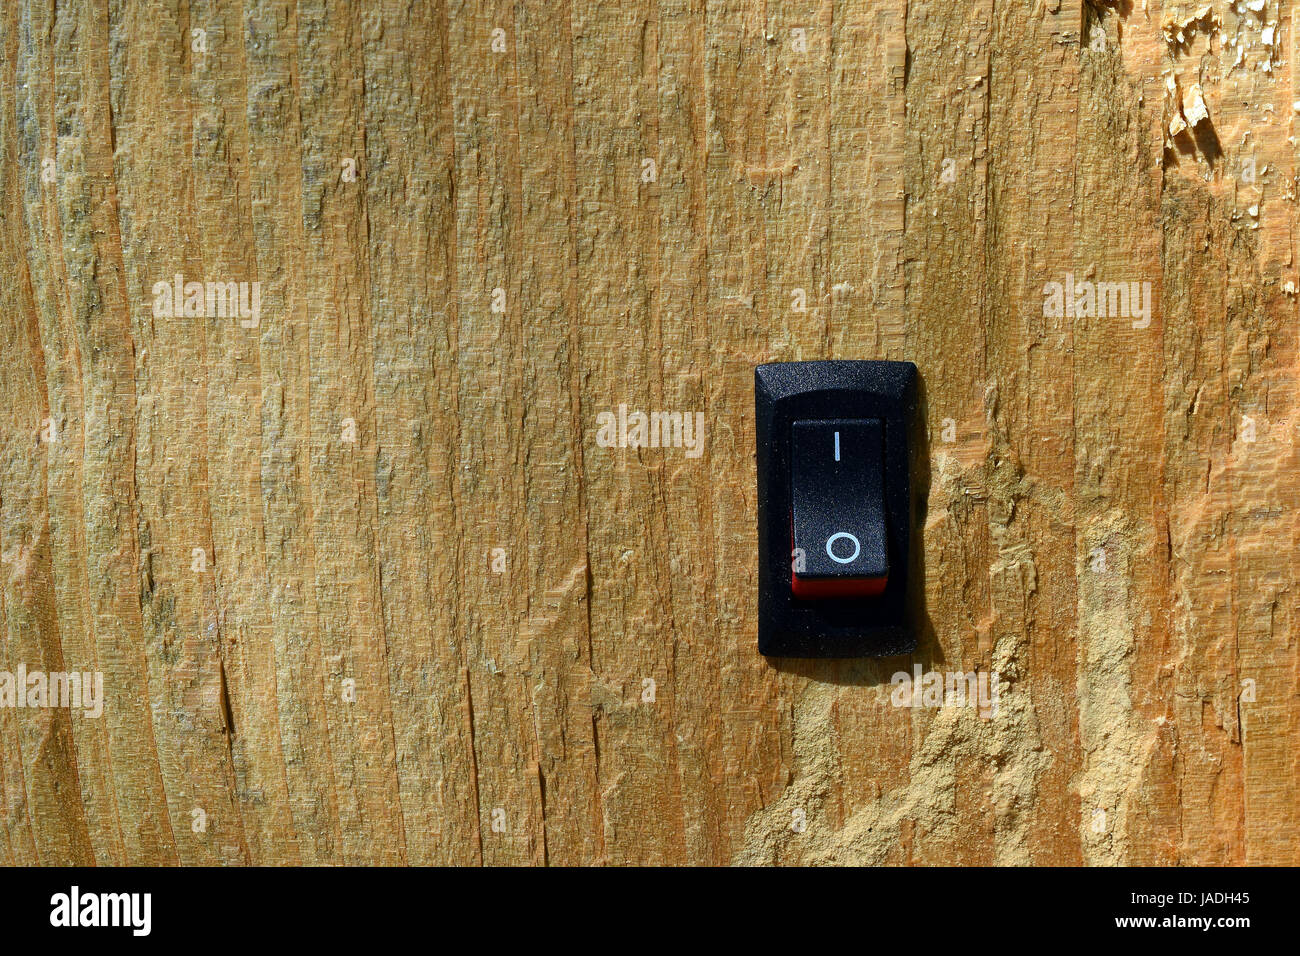 Power switch inserted on wood. Conservation, green business and alternative energy concept. - Stock Image